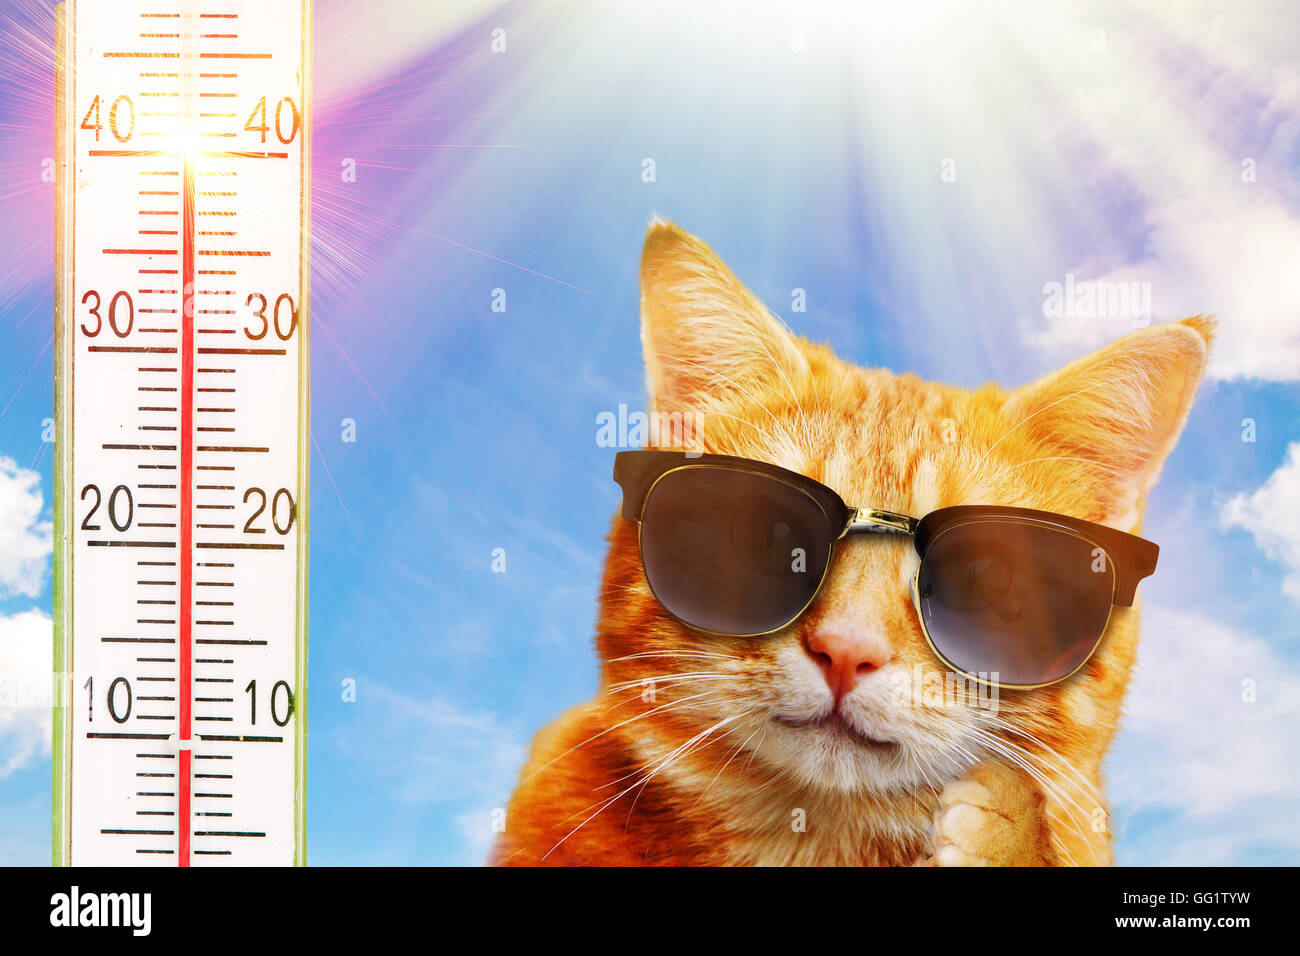 Cat on a very hot day - Stock Image